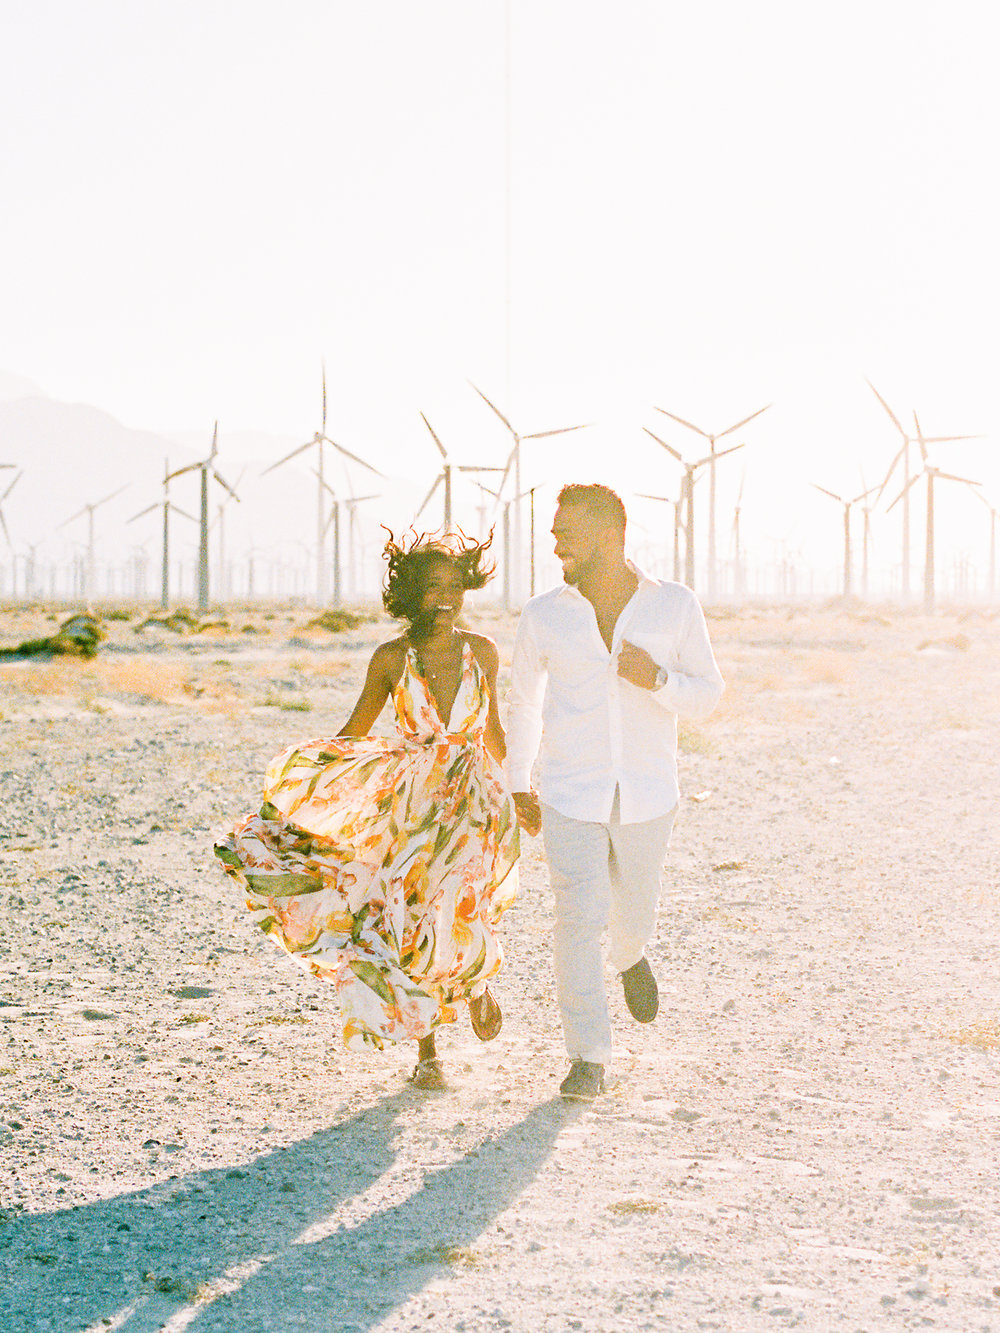 dennisroycoronel_essencecharles_palmsprings_engagement-33.jpg